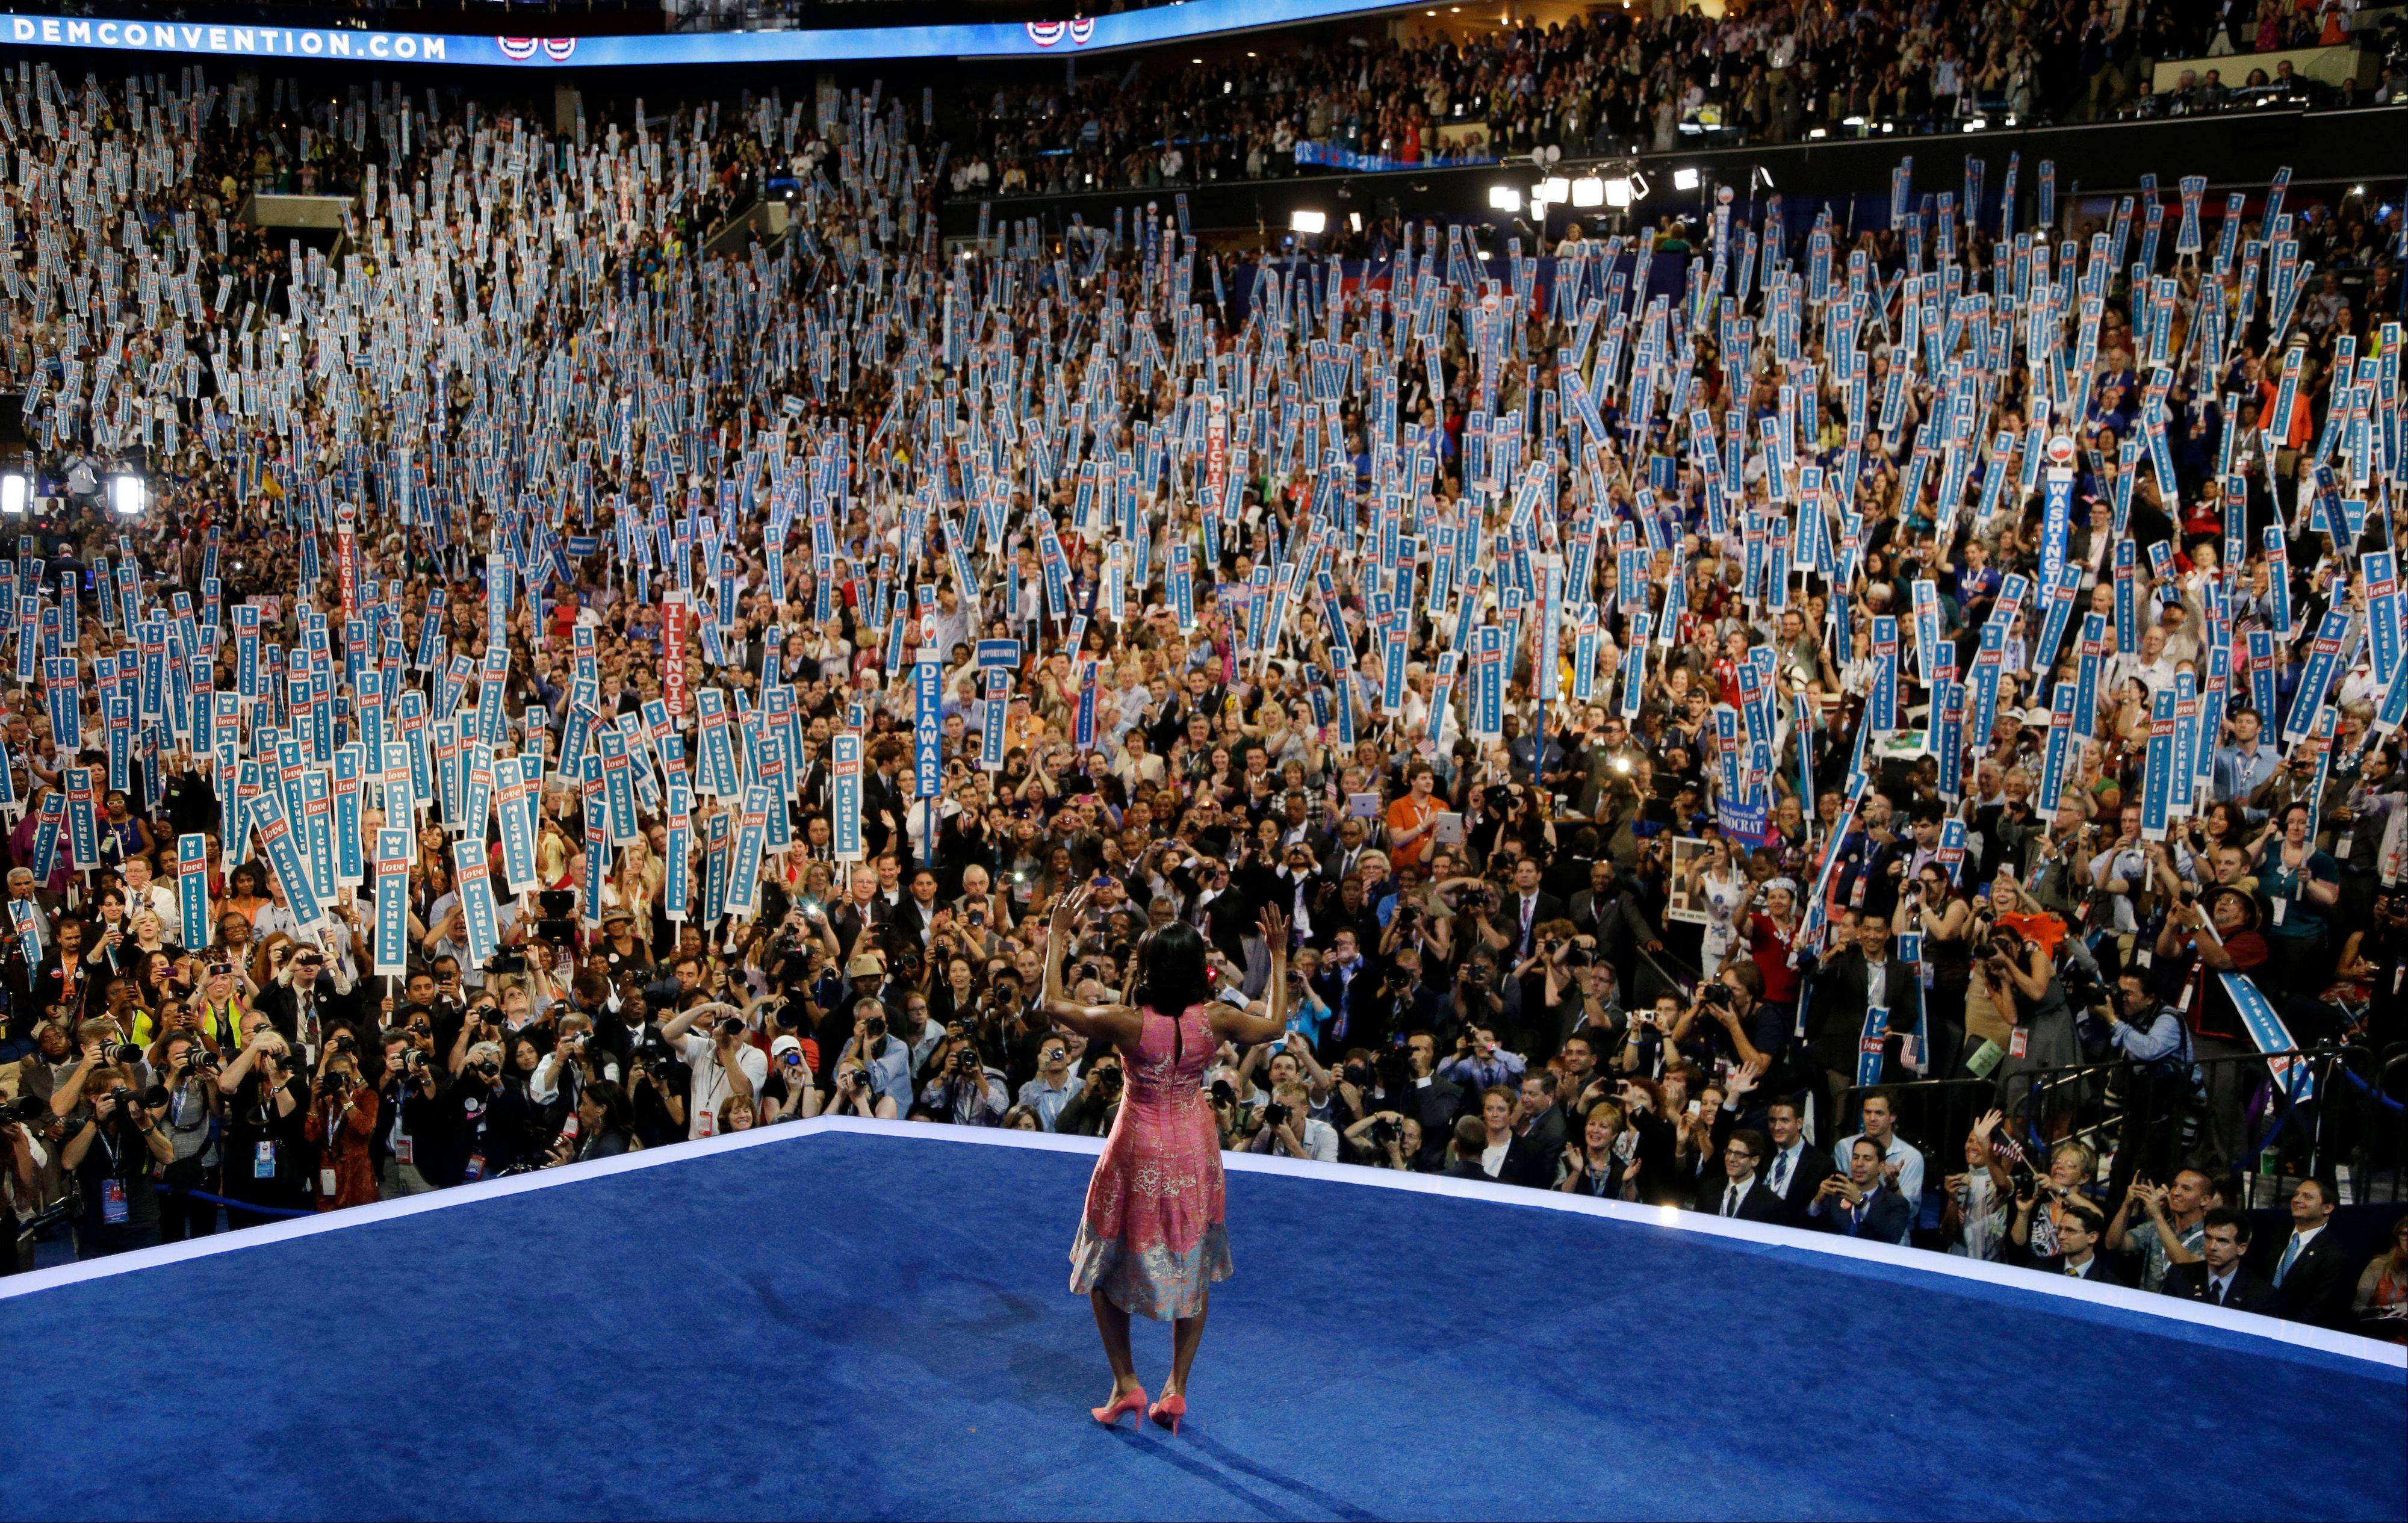 First Lady Michelle Obama walks on stage to speak to the Democratic National Convention in Charlotte, N.C., on Tuesday, Sept. 4, 2012.